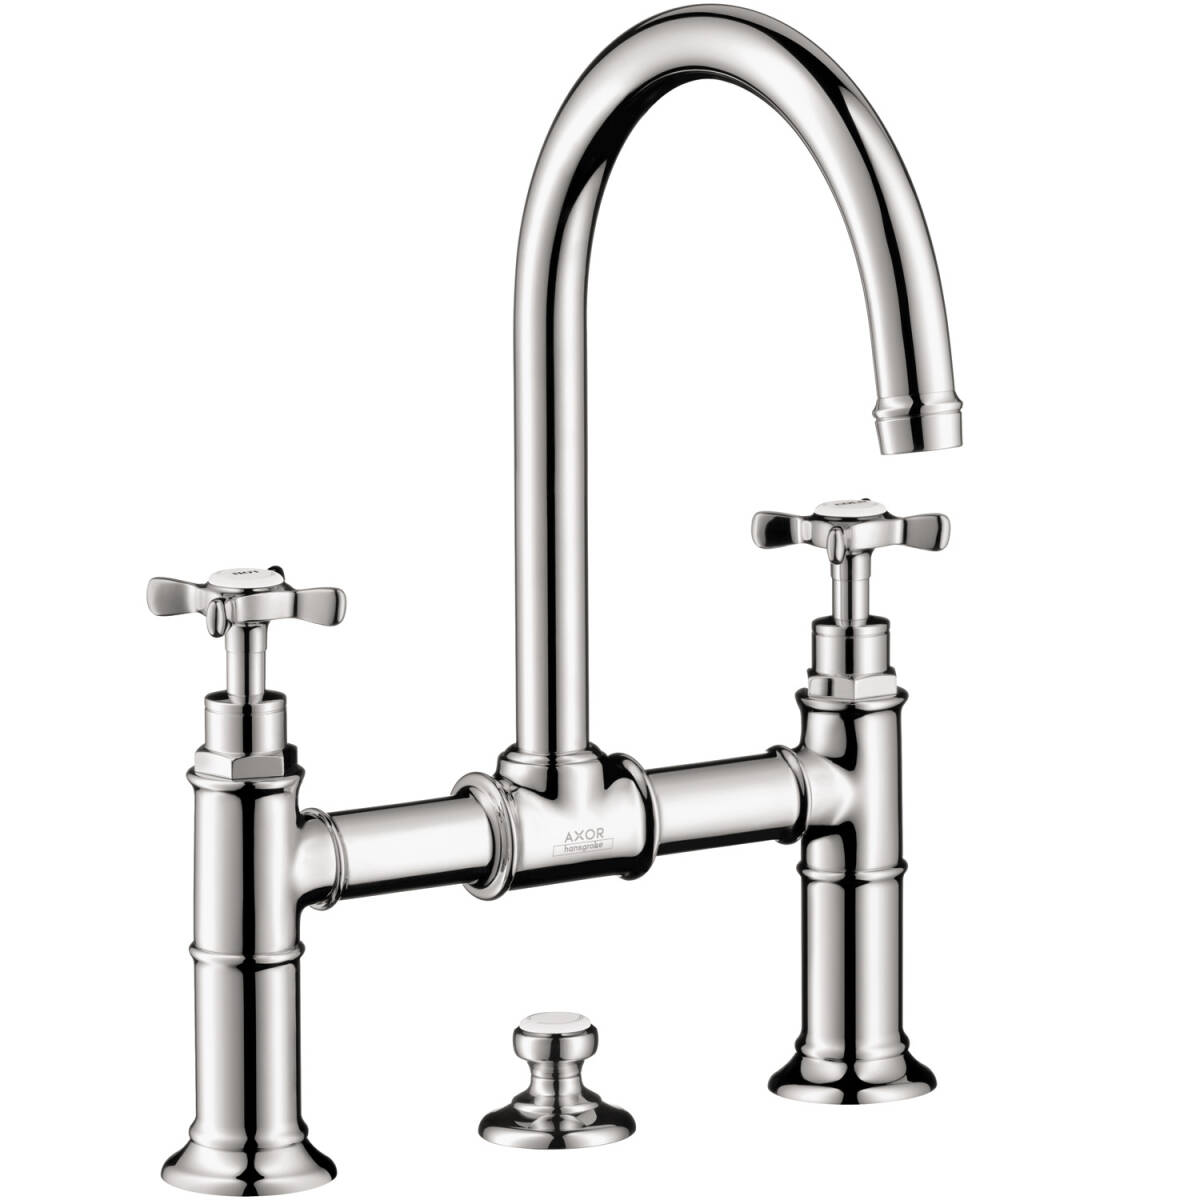 2-handle basin mixer 220 with cross handles and pop-up waste set, Chrome, 16510001